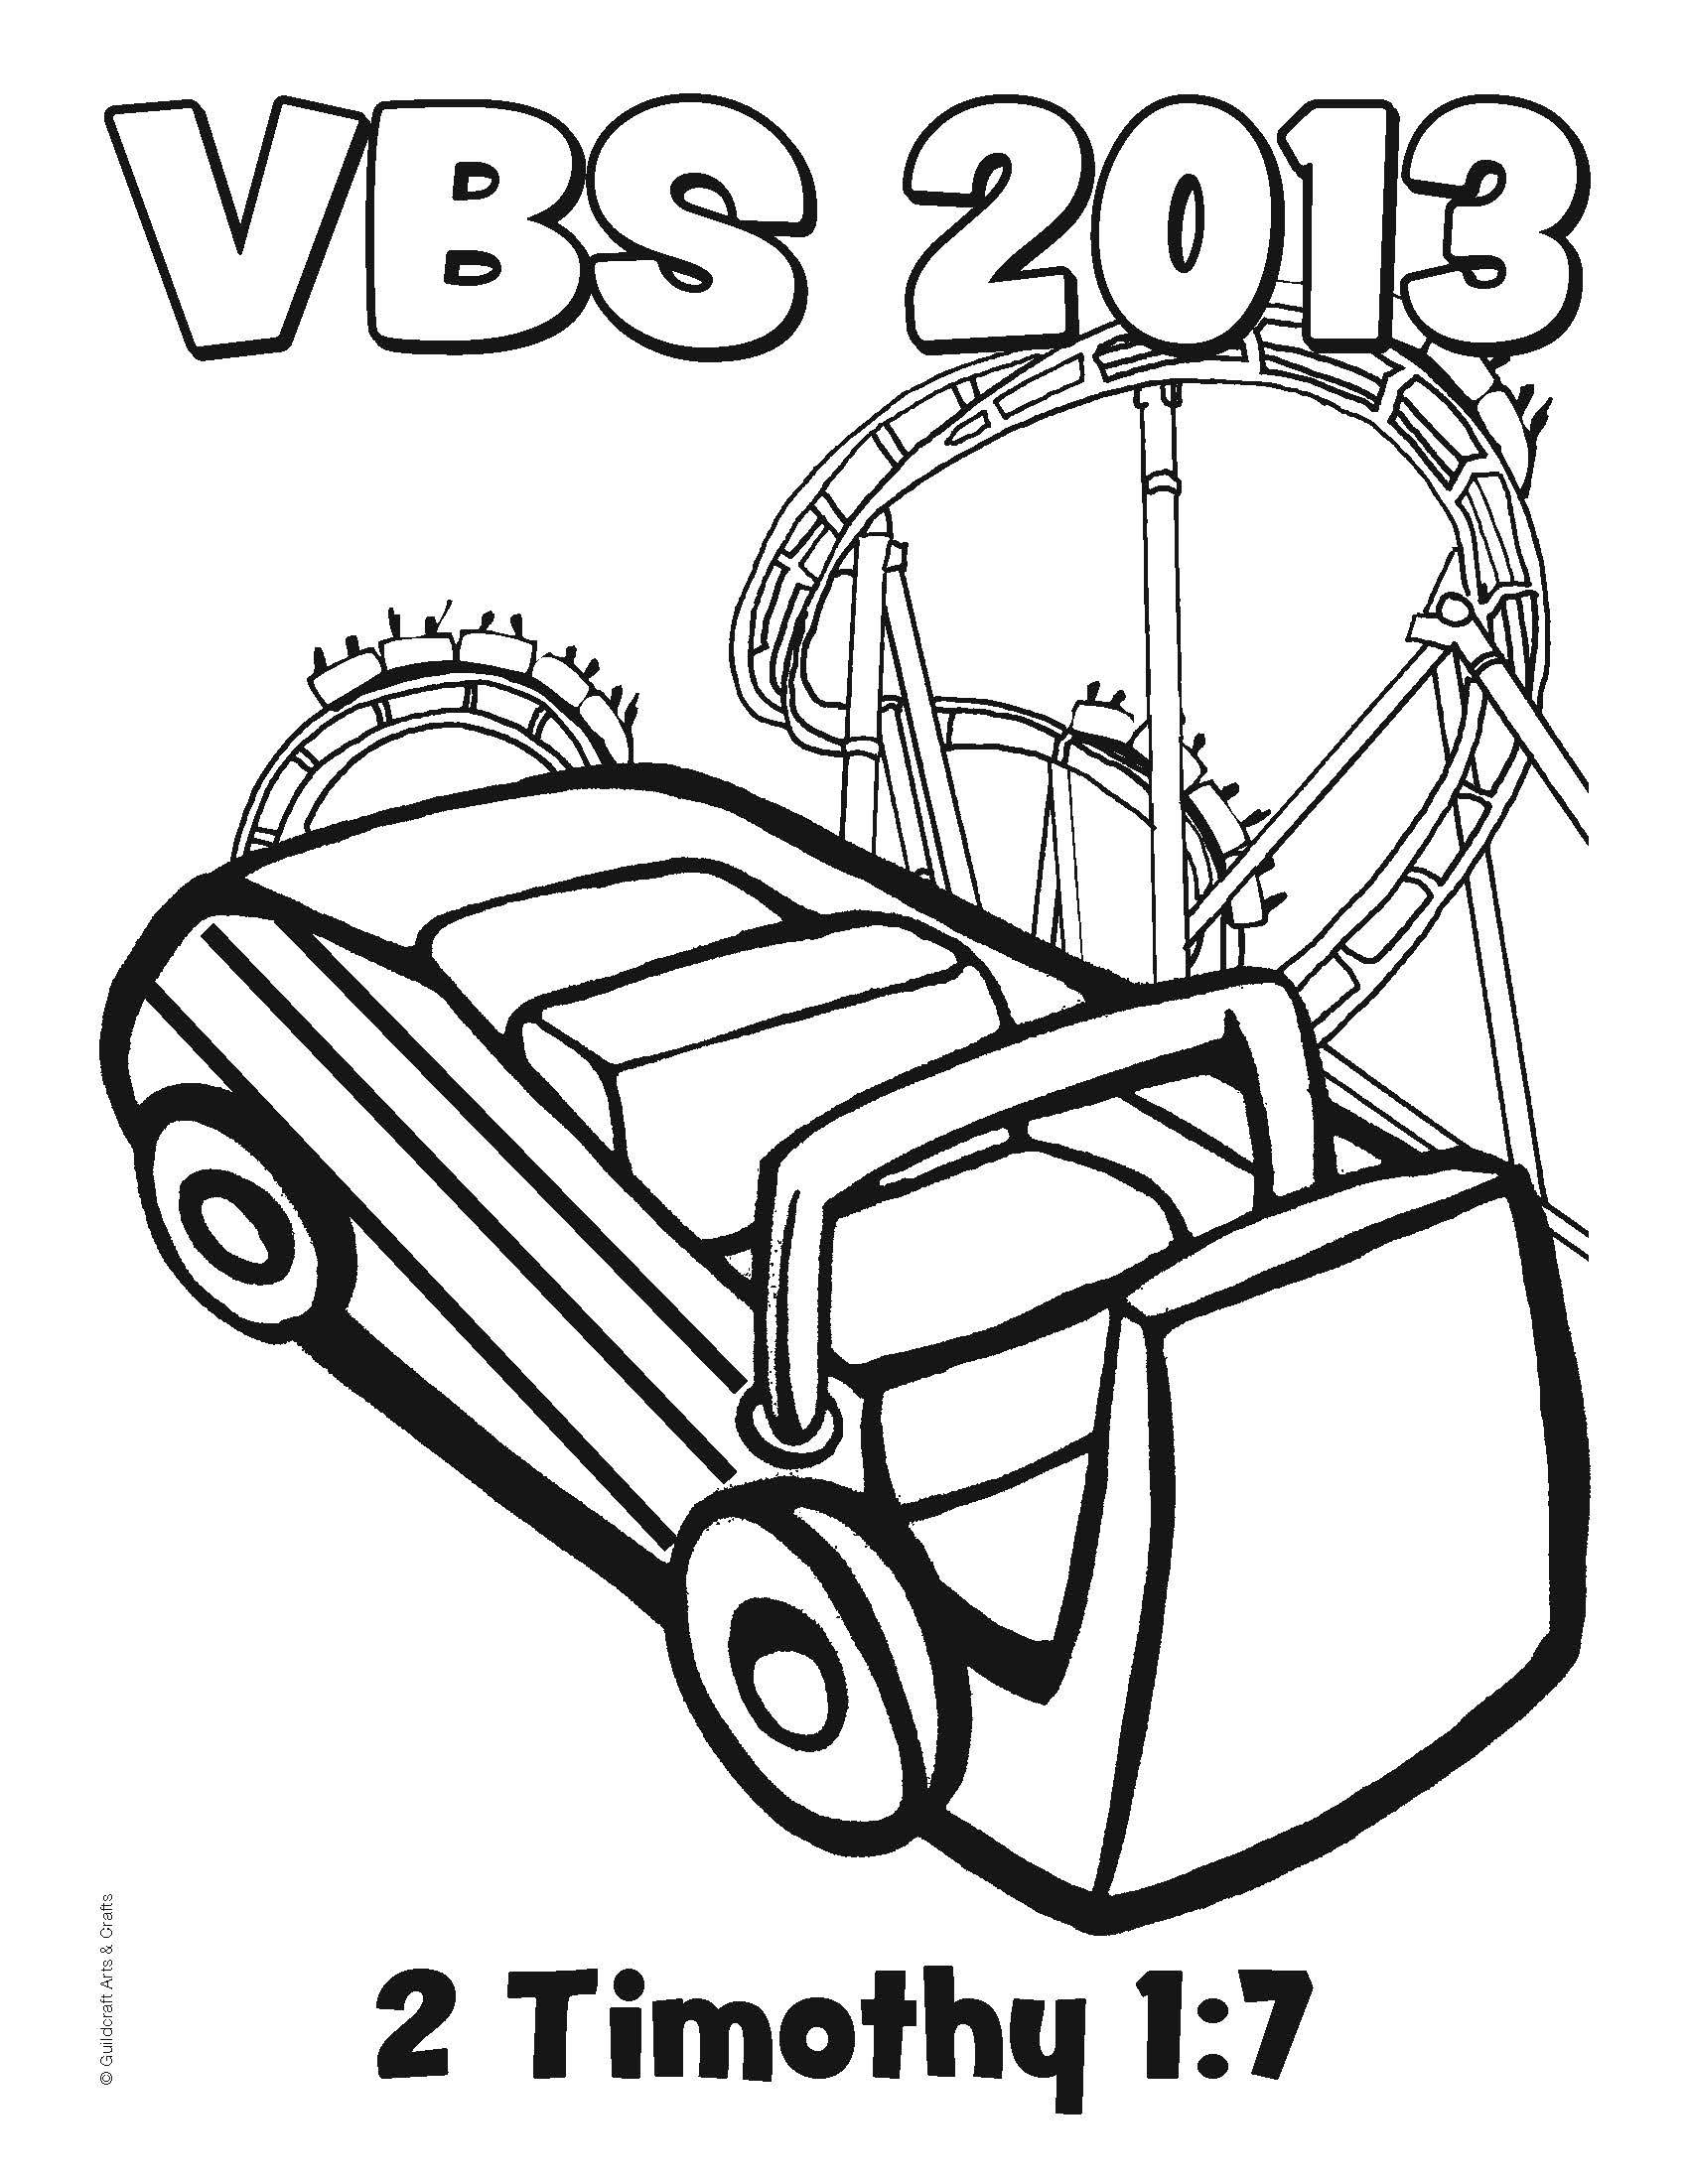 Free Roller Coaster Vbs Coloring Sheet From